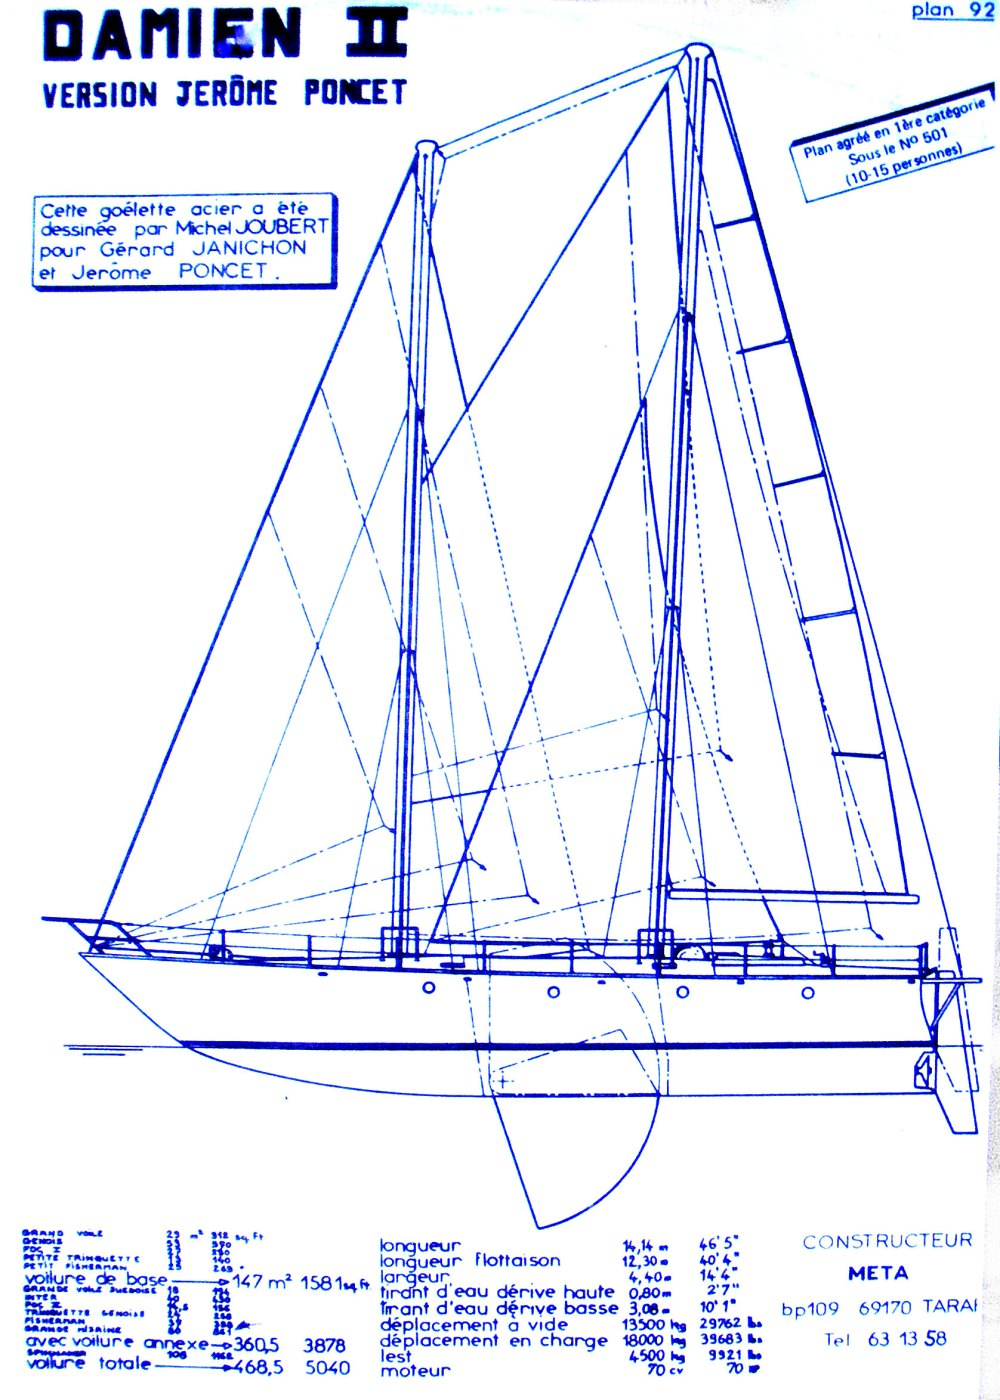 medium resolution of  http www pelagic co uk and kate and hamish laird http www expeditionsail com are i think are similarly ballasted swing keel and all do high